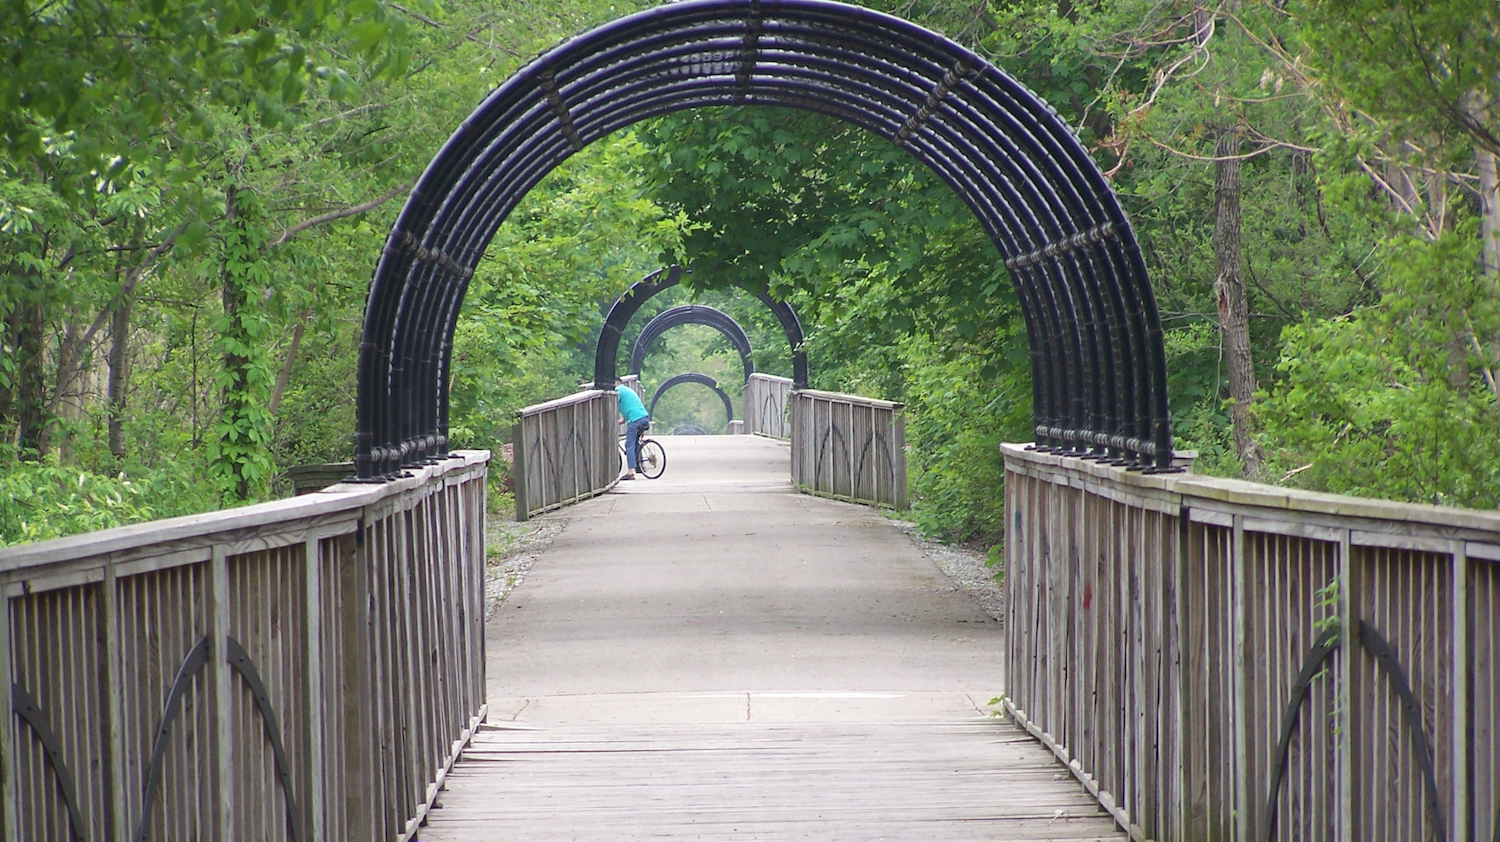 Cardinal Greenway, bridge in Marion Section | Photo by Eric Oberg, courtesy RTC